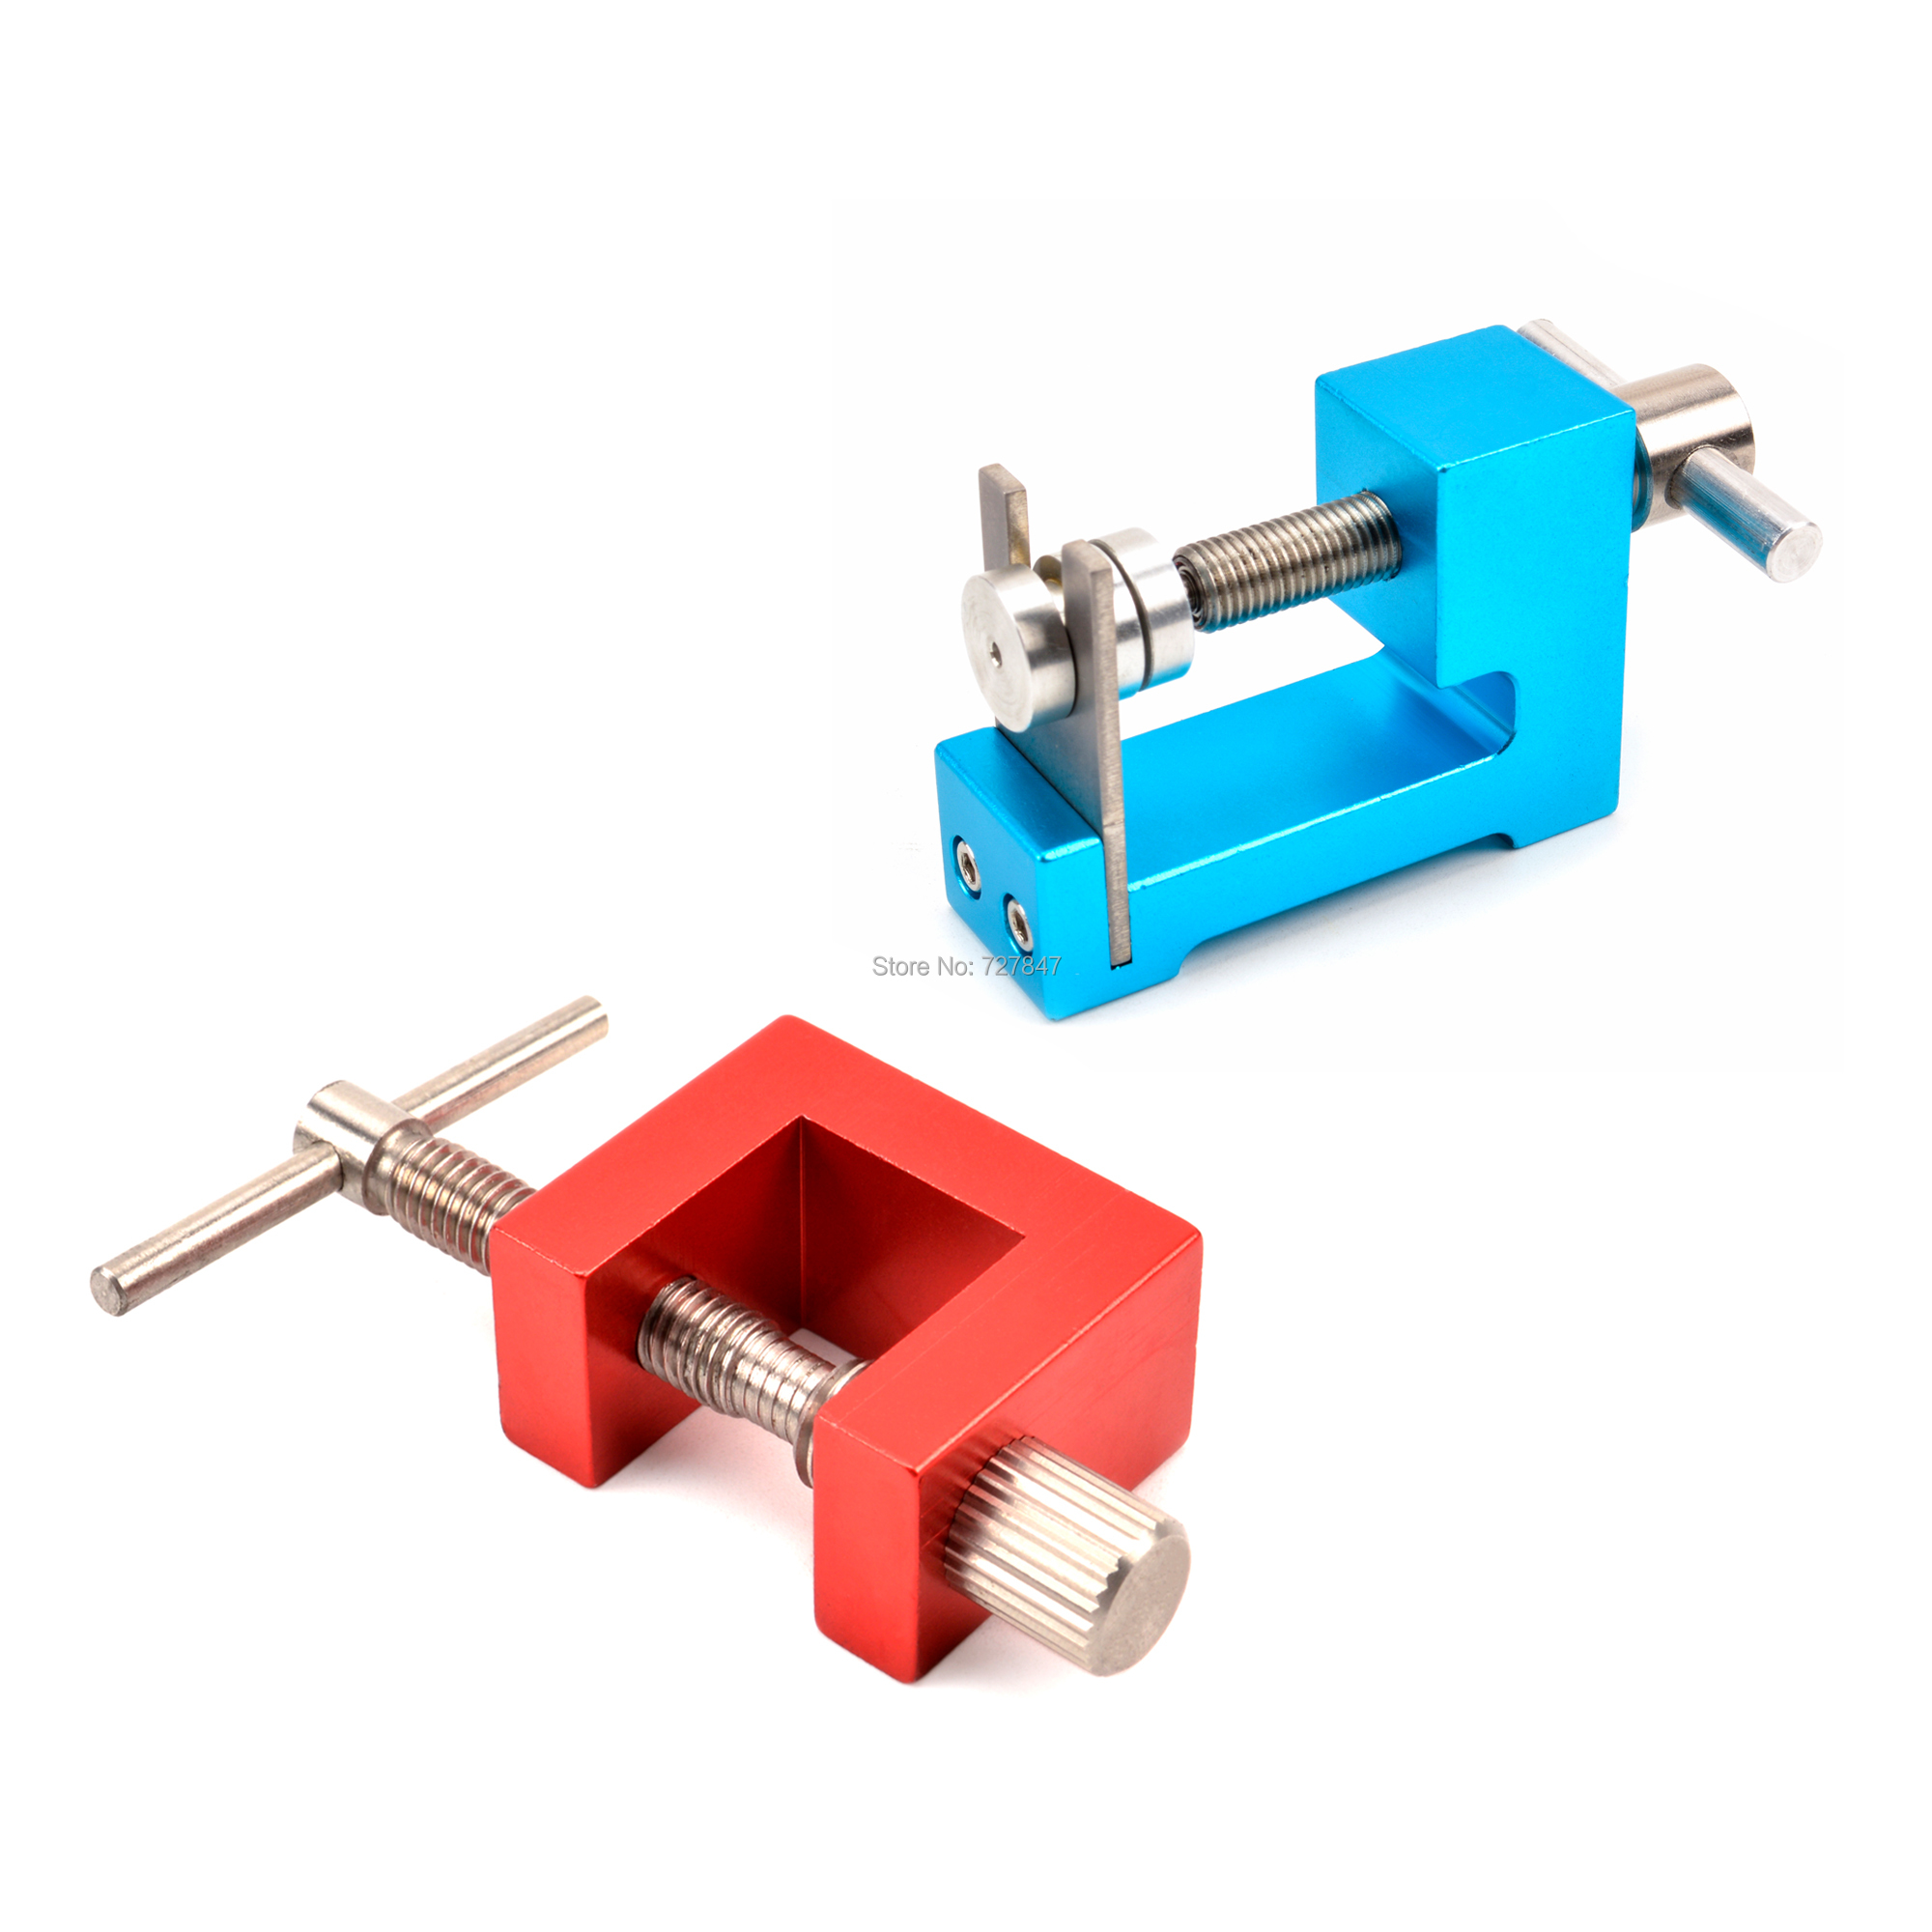 Mini 4WD <font><b>Car</b></font> Tools Bearing/Roller Disassembly Tools Tire <font><b>Guide</b></font> Roller Installer Remover Assembler Disassembler Modified Parts image